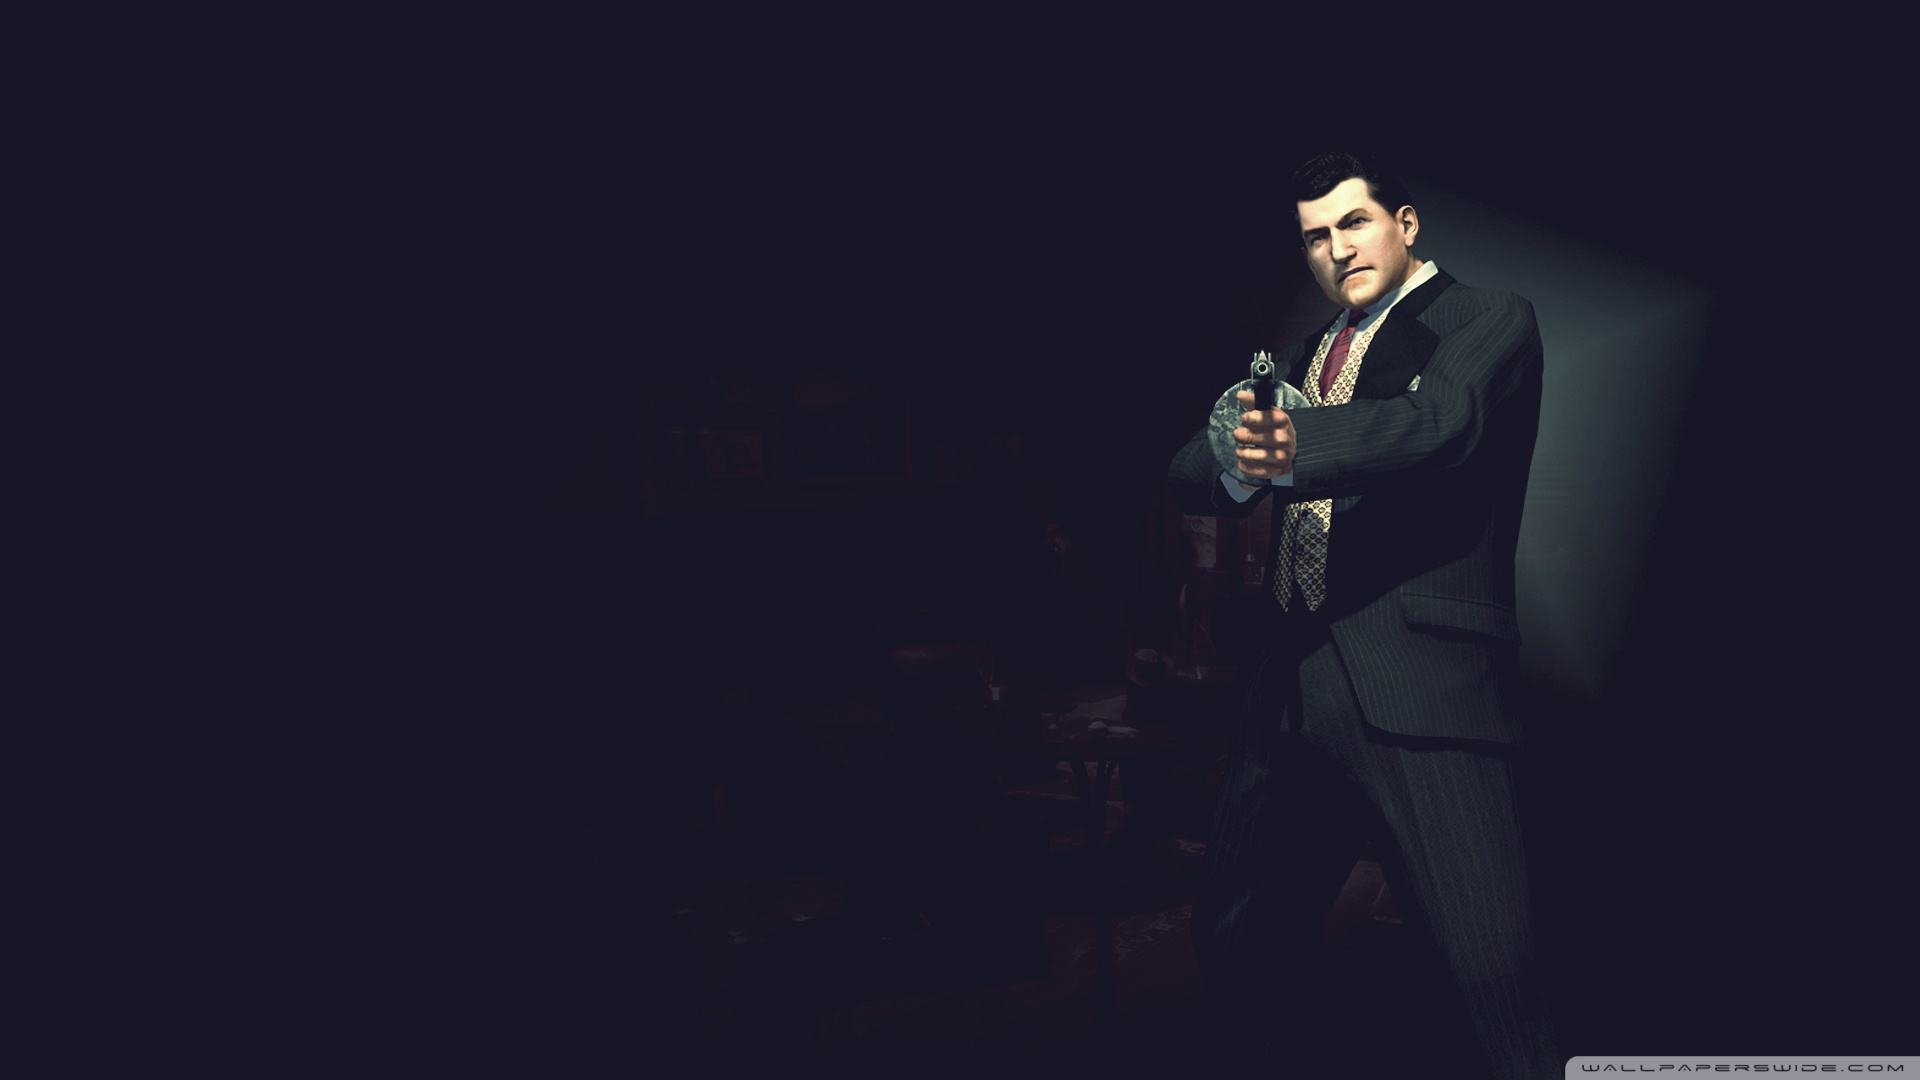 Mafia Wallpaper Images Is Cool Wallpapers